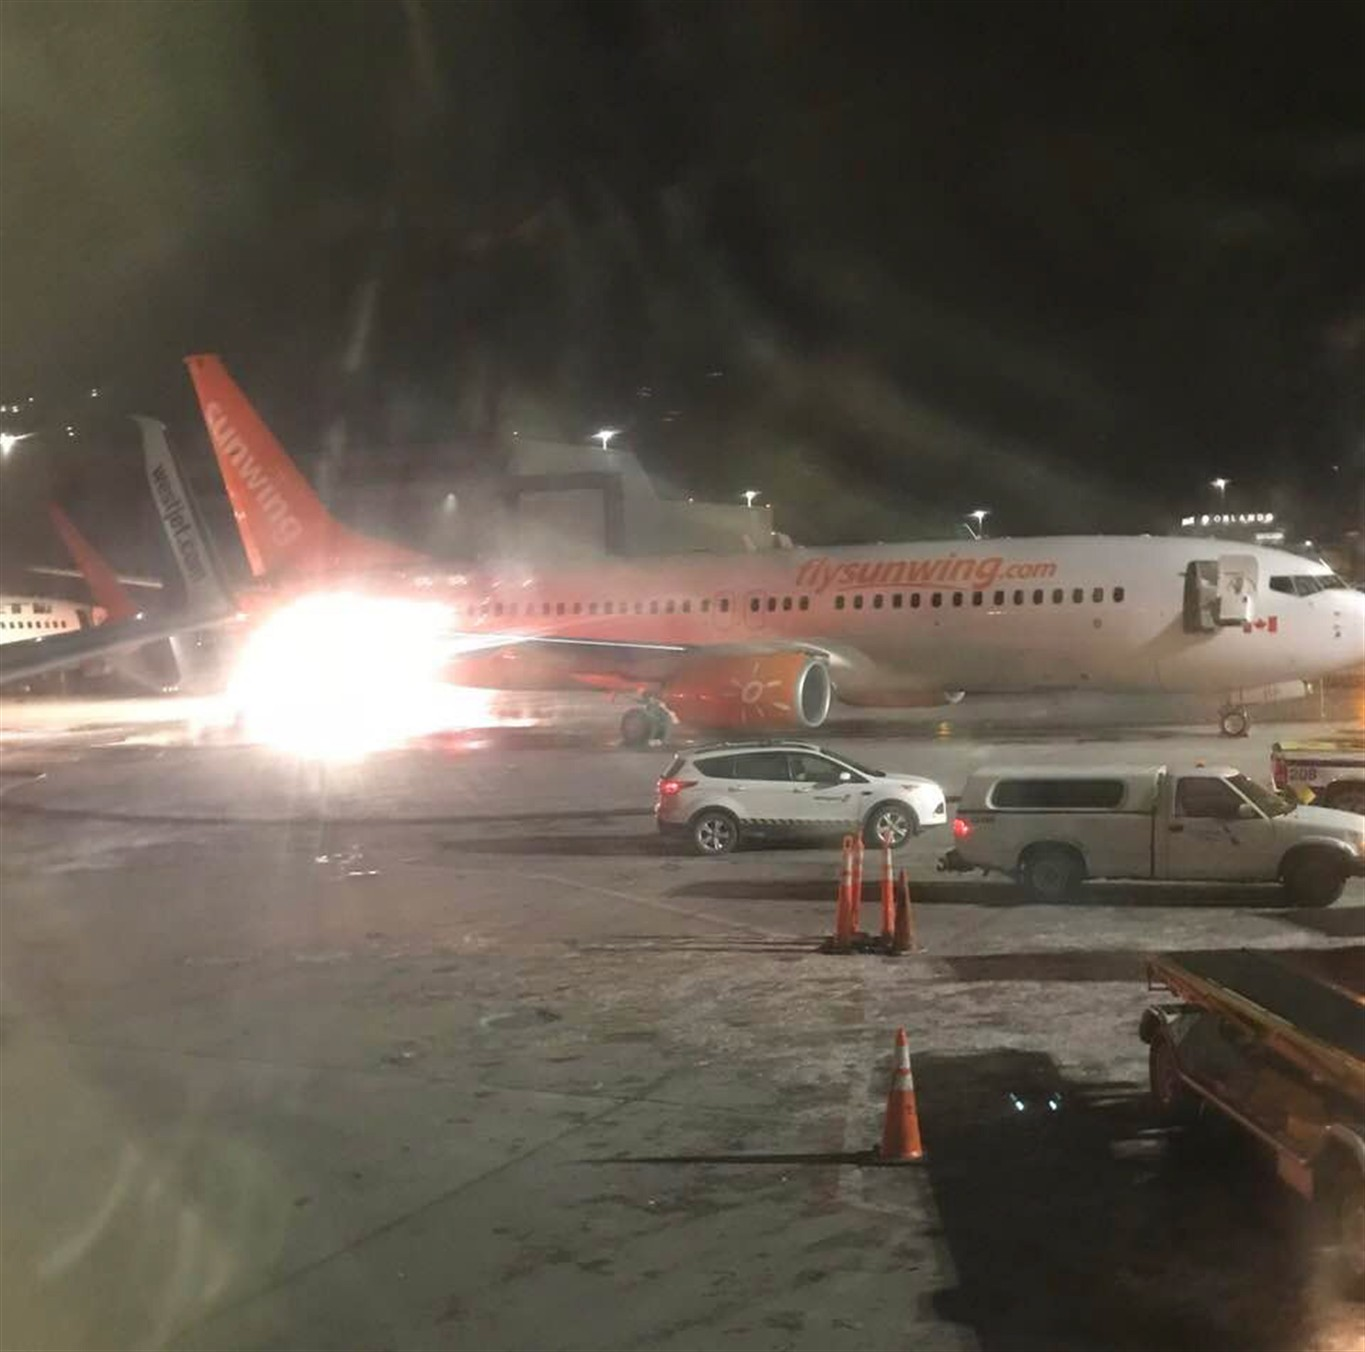 A crunch, a fire, and panic: planes collide at Toronto airport